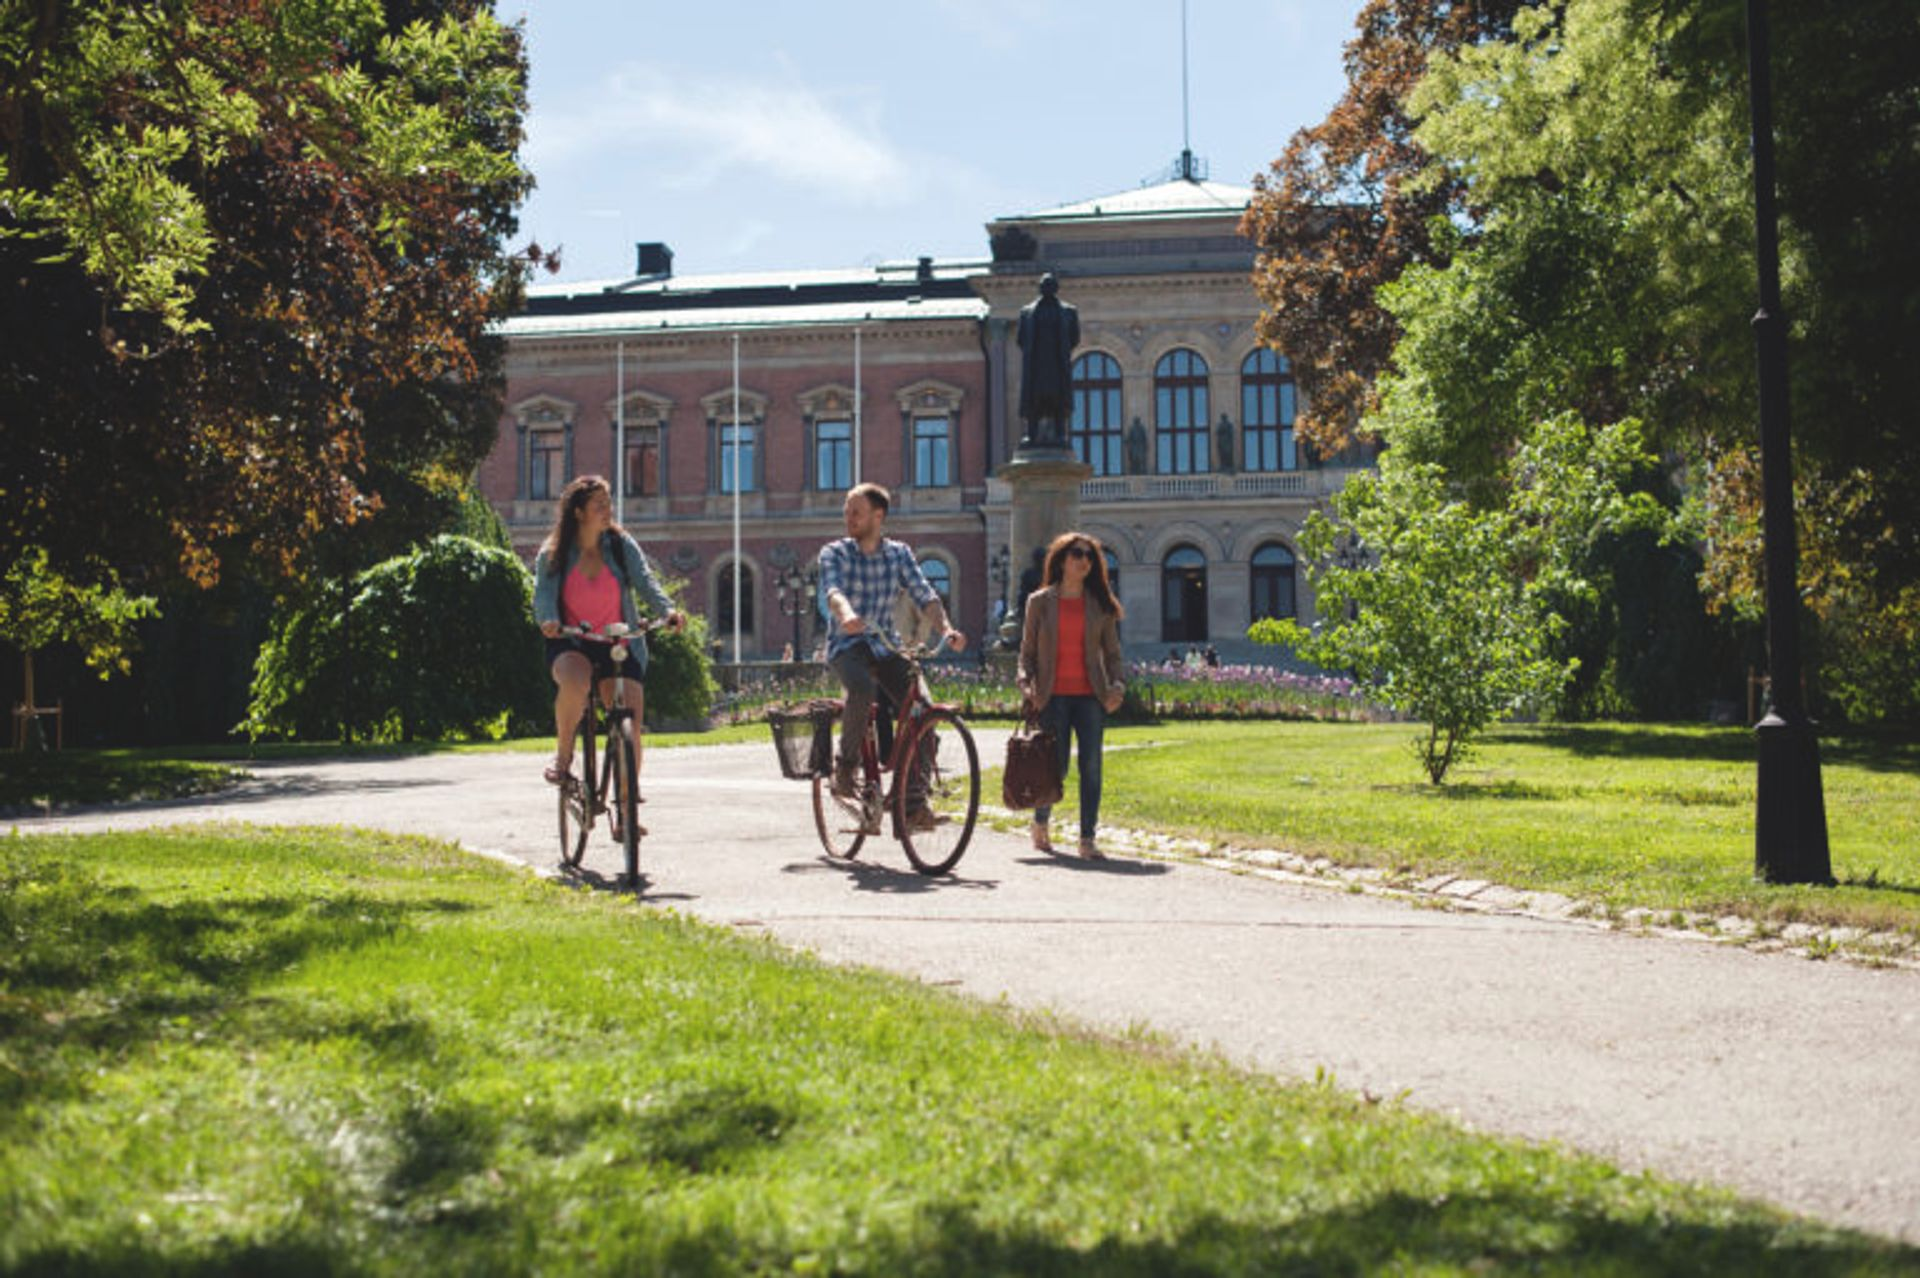 Students cycling in front of a large university building.